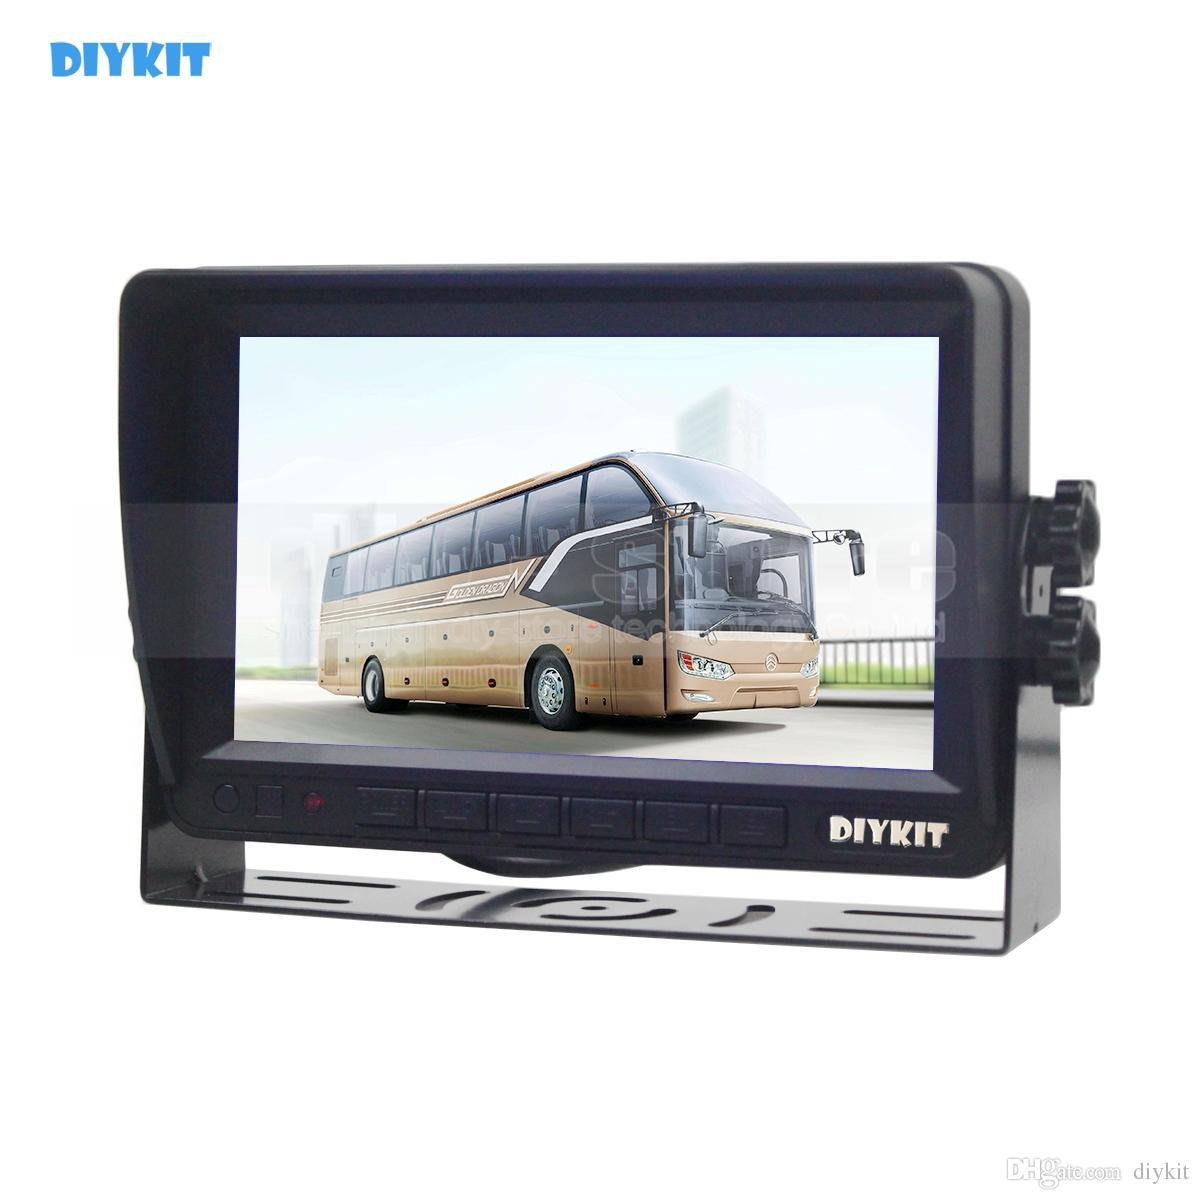 DIYKIT AHD 7inch TFT LCD Car Monitor Rear View Monitor Support 2000000 Pixels AHD Camera with 2 x 4PIN Video Input